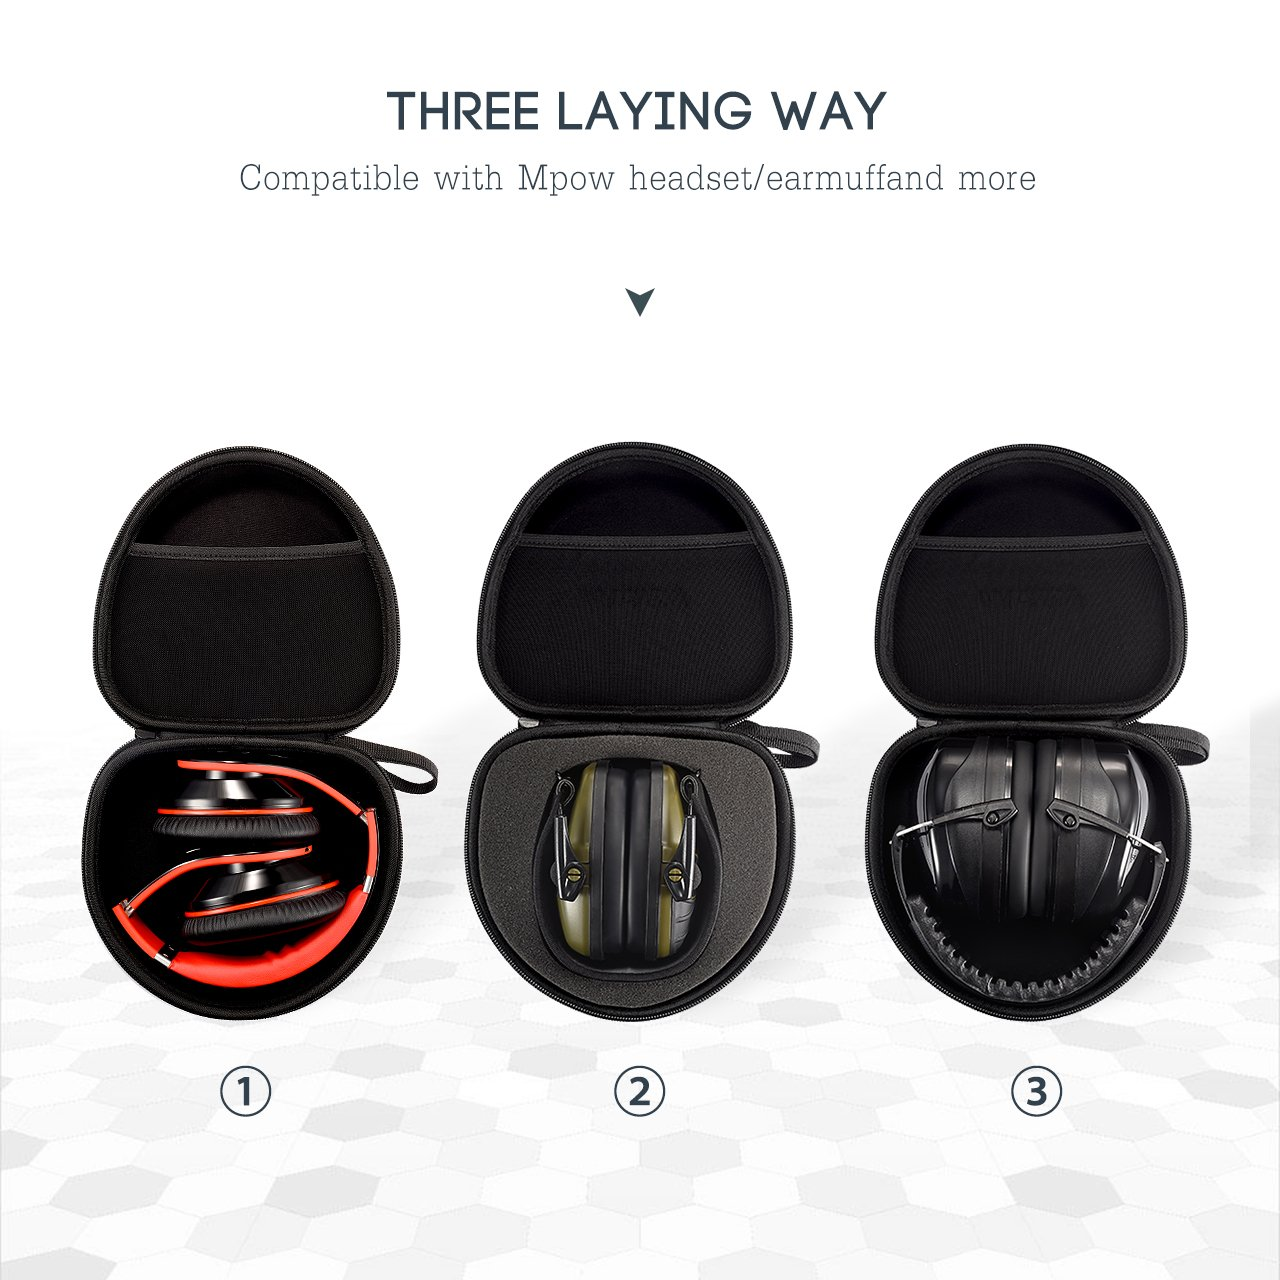 Mpow Earmuff Case for Mpow 035/068/108 Noise Reduction Safety Ear Muffs, Hard Travel Case EVA Hardshell for Mpow 059/H1/H2/H5 Foldable Headphone, Travel Carrying Case with Mesh Pocket for Accessories by Mpow (Image #5)